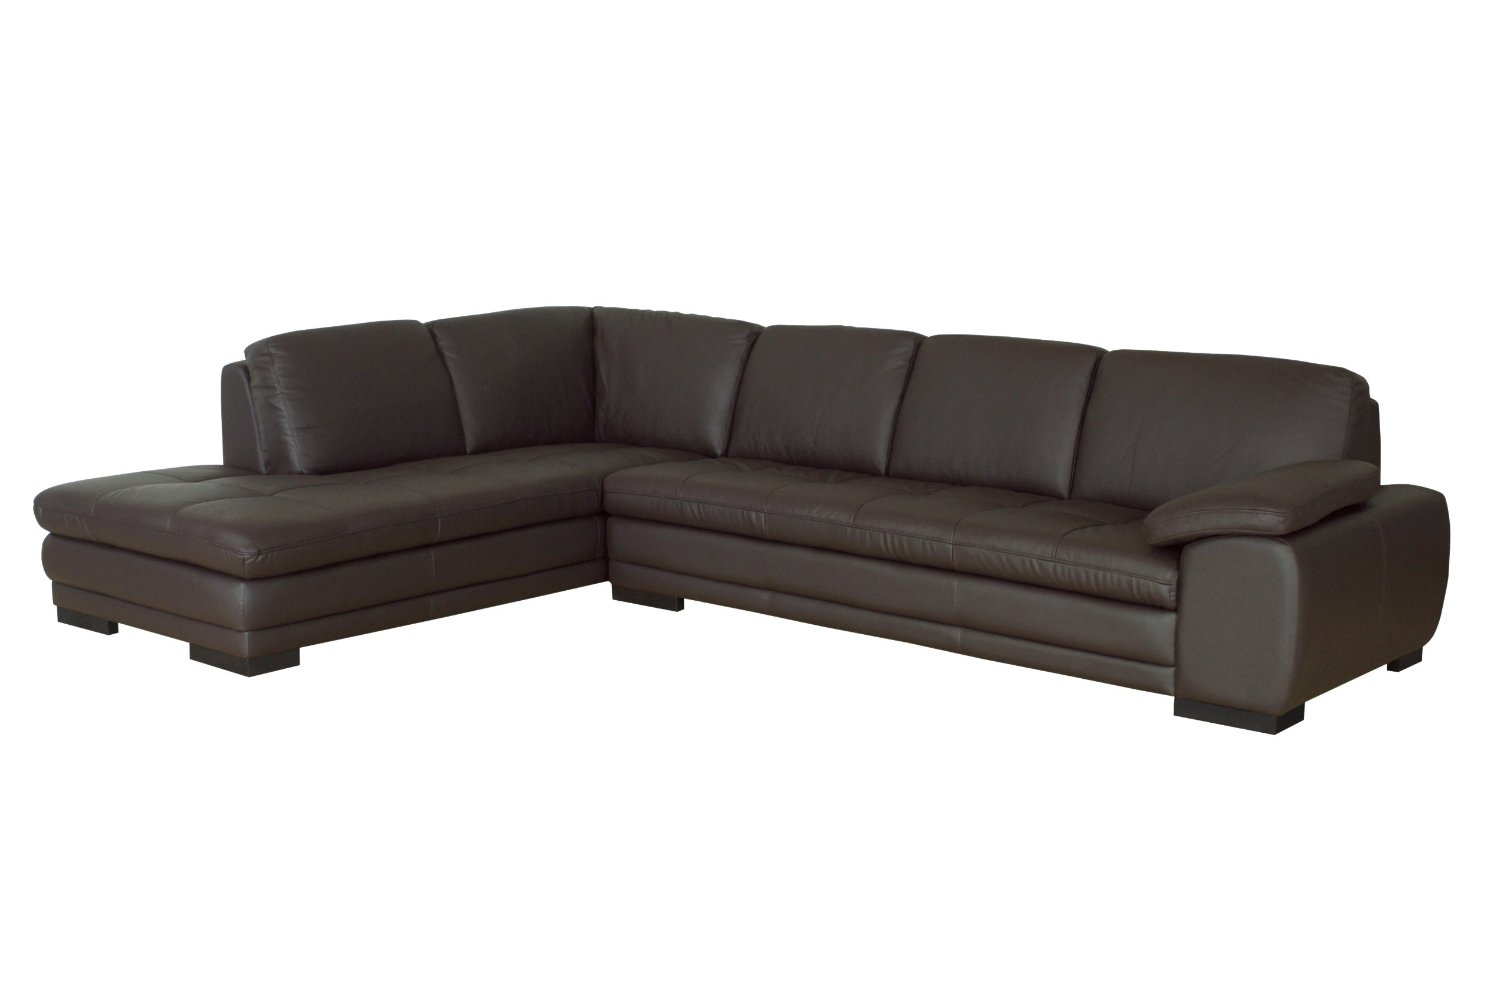 Leather sectional furniture guide leather for Leather sectional sofa